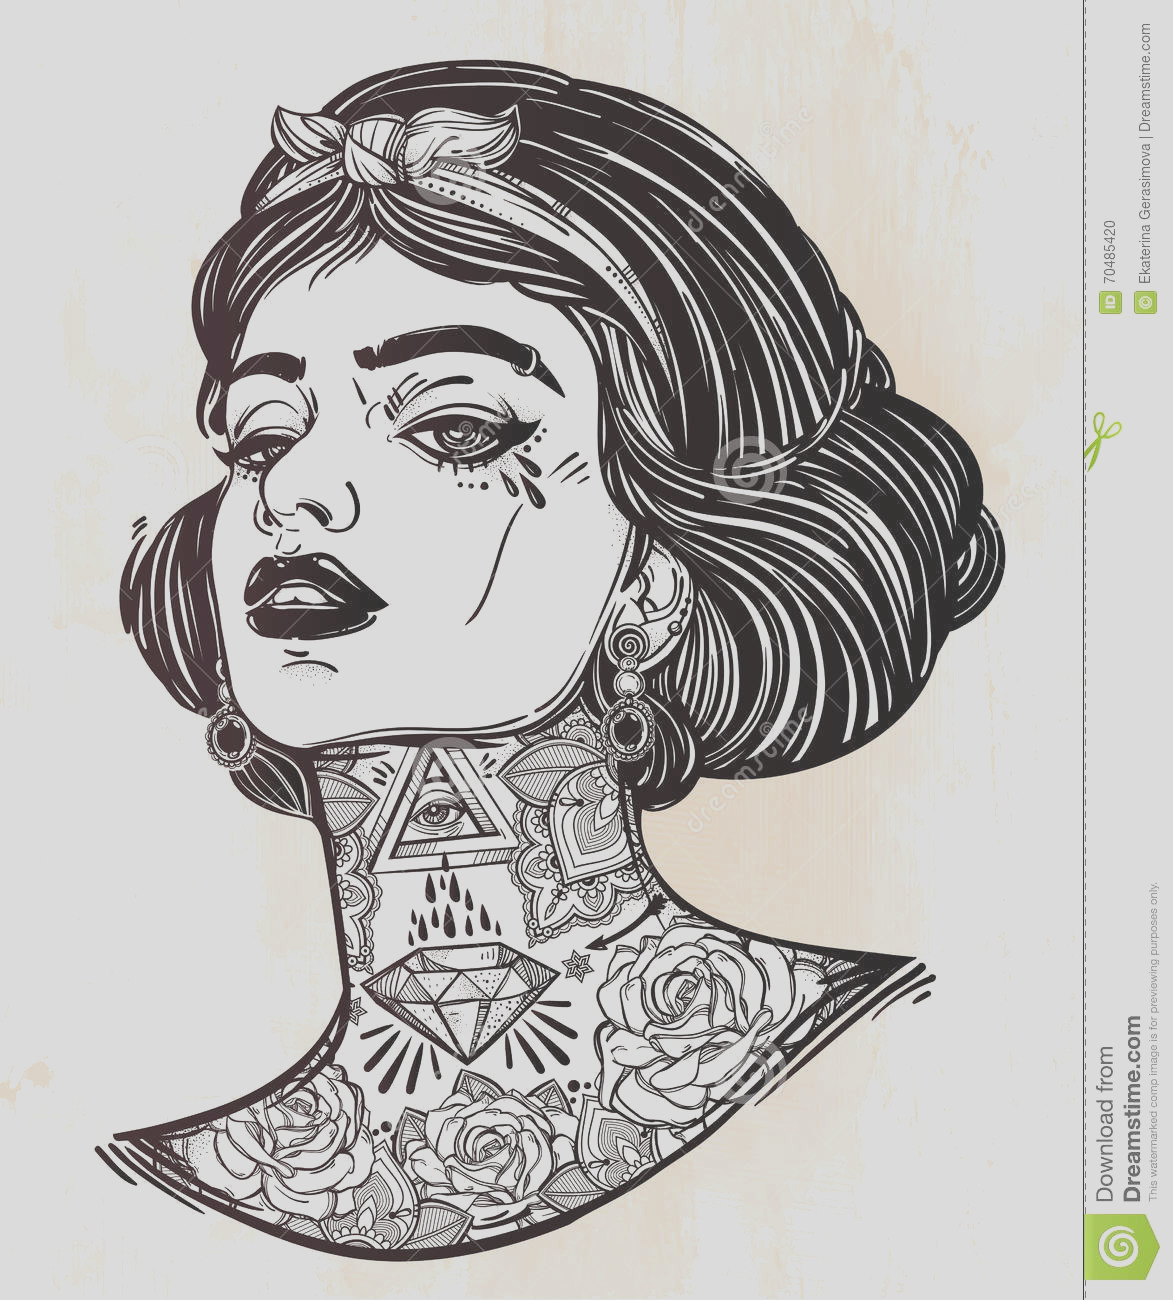 stock illustration adult coloring vector young tattooed girl book page face book page adults female portriat flash tattoo style image